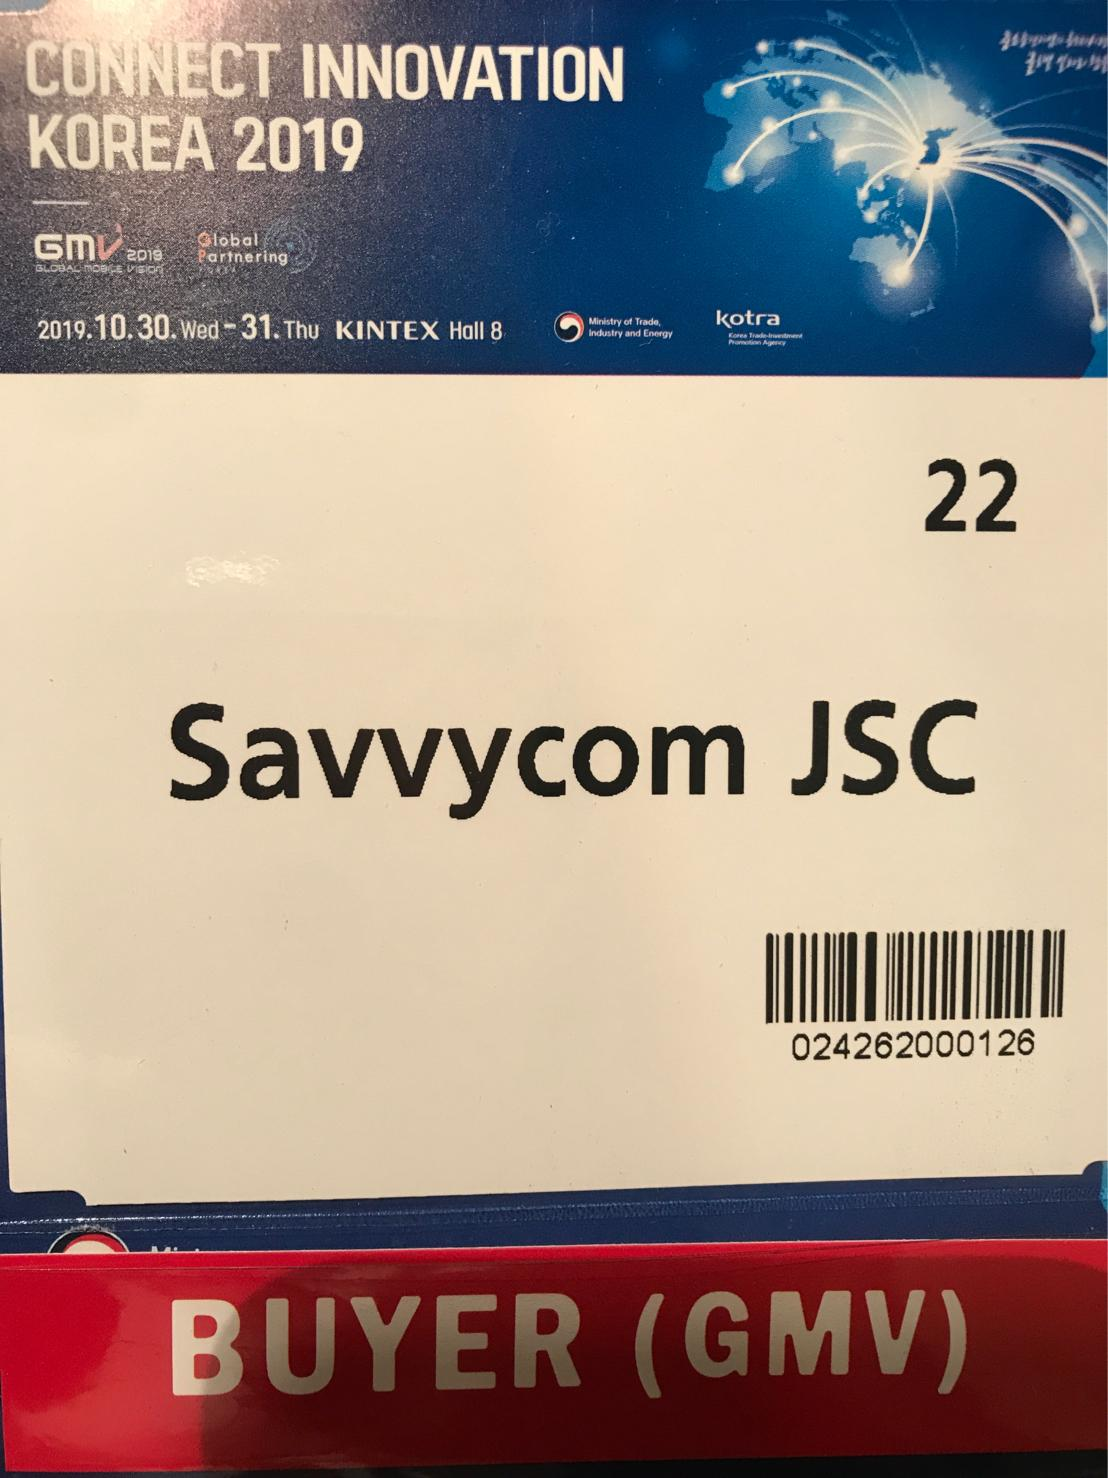 Savvycom Connect Innovation Korea